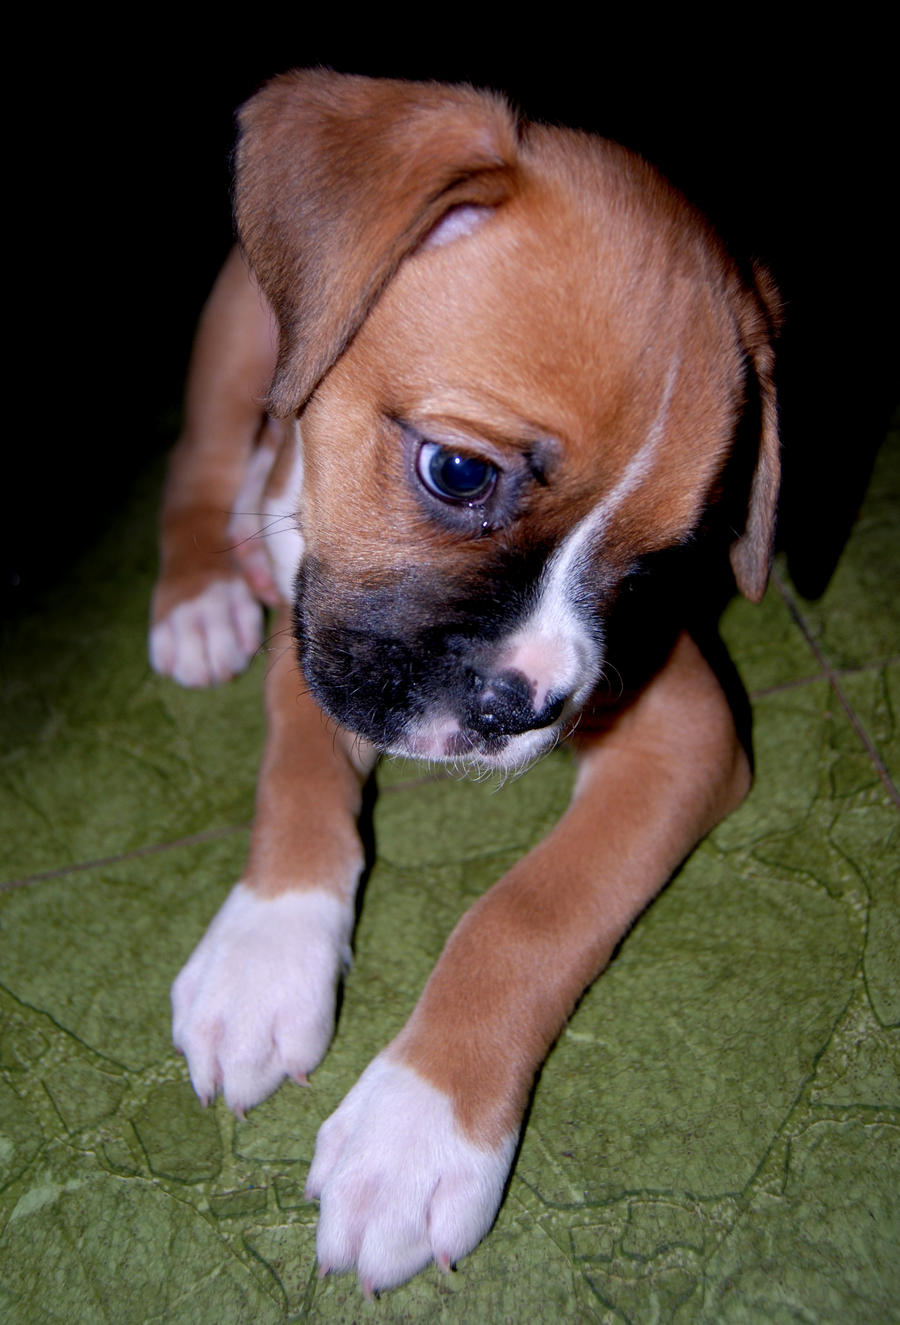 Cute Boxer Puppy by Stock-by-Kai on deviantART